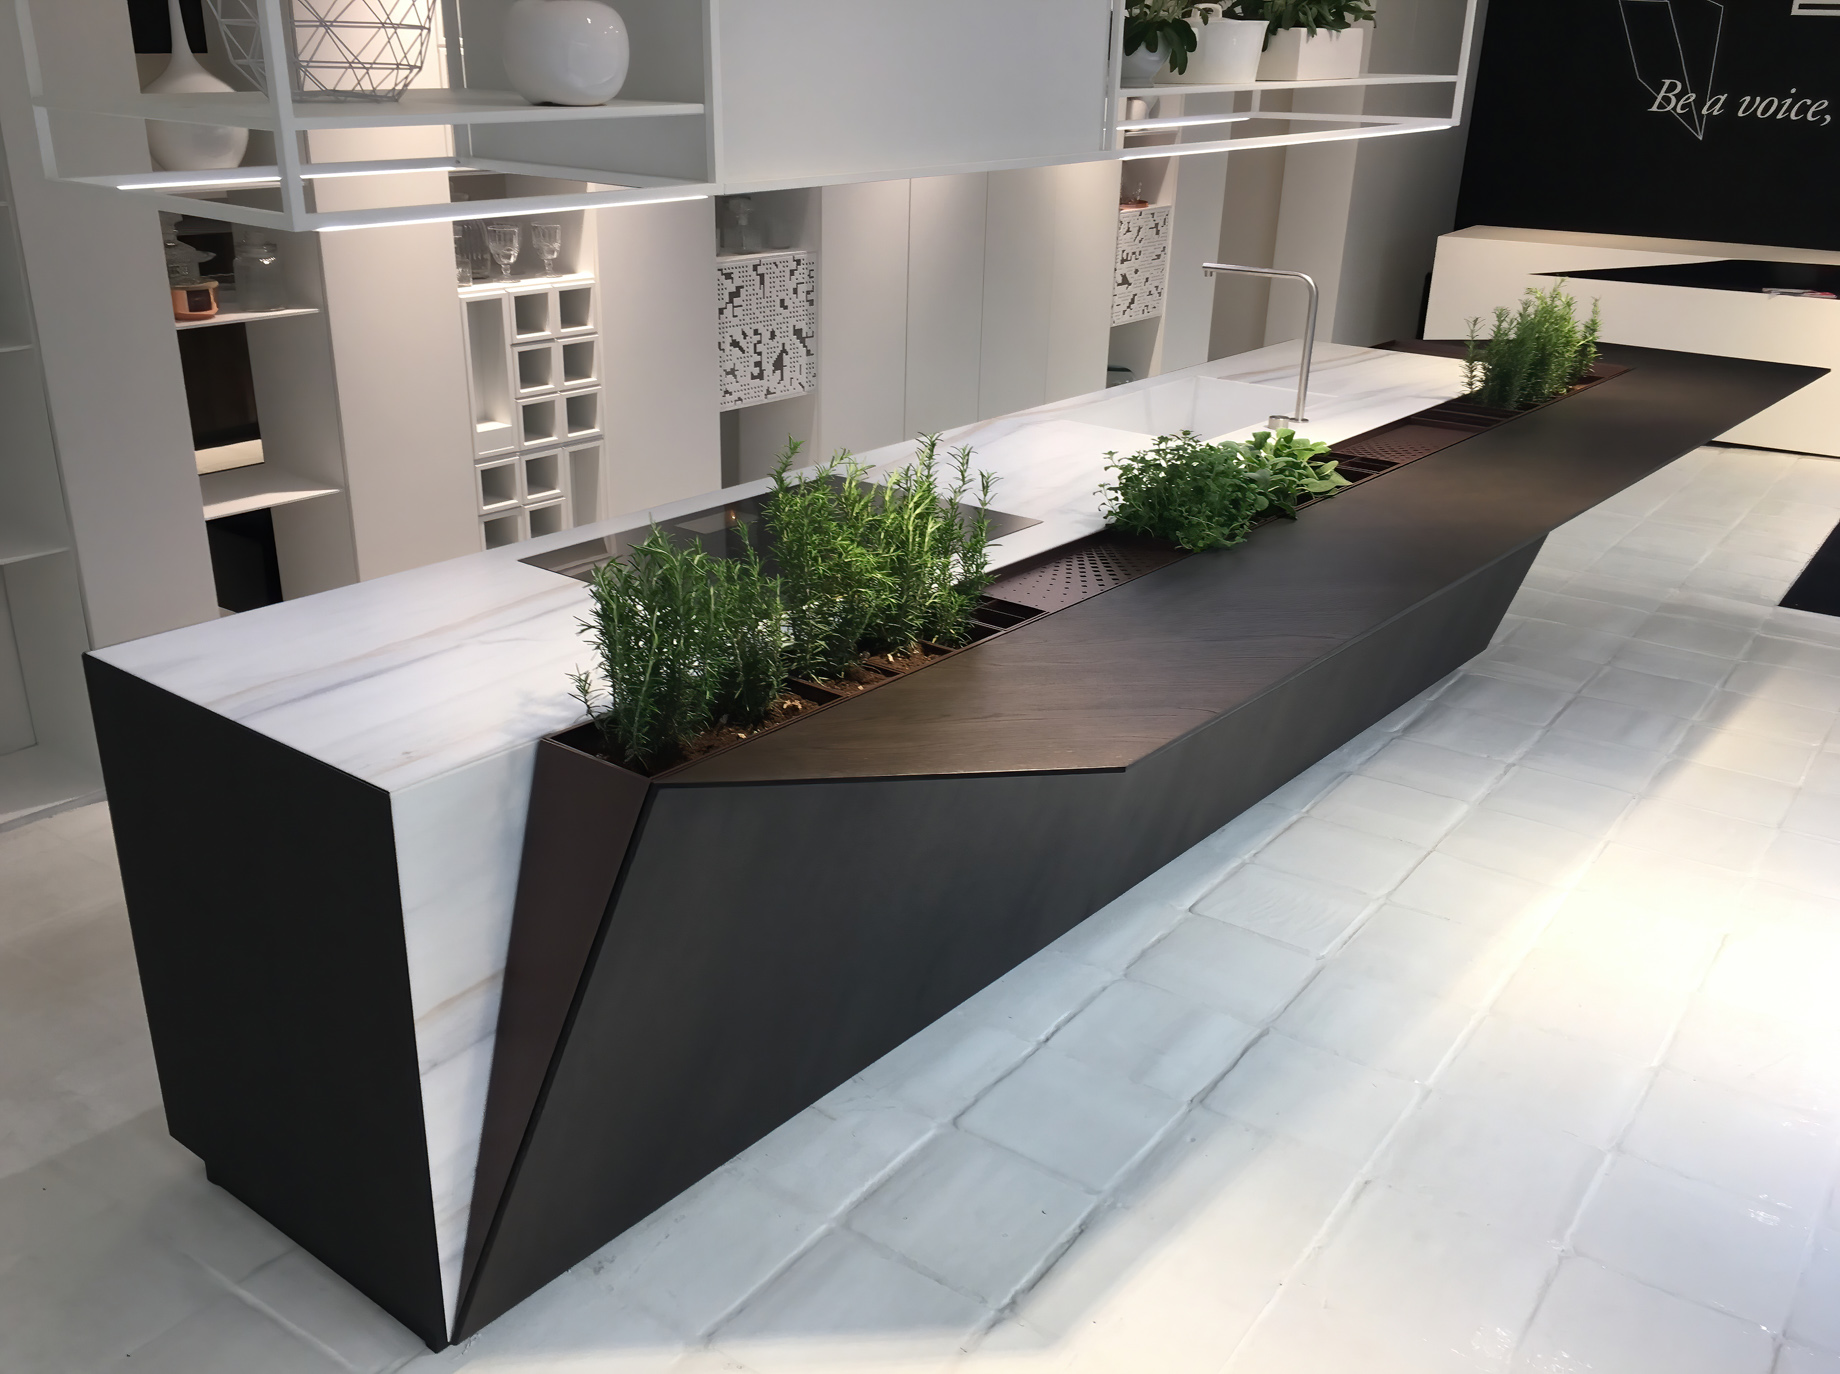 EGO Kitchen The Cut by Record è Cucine Milan, Italy – Alessandro Isola